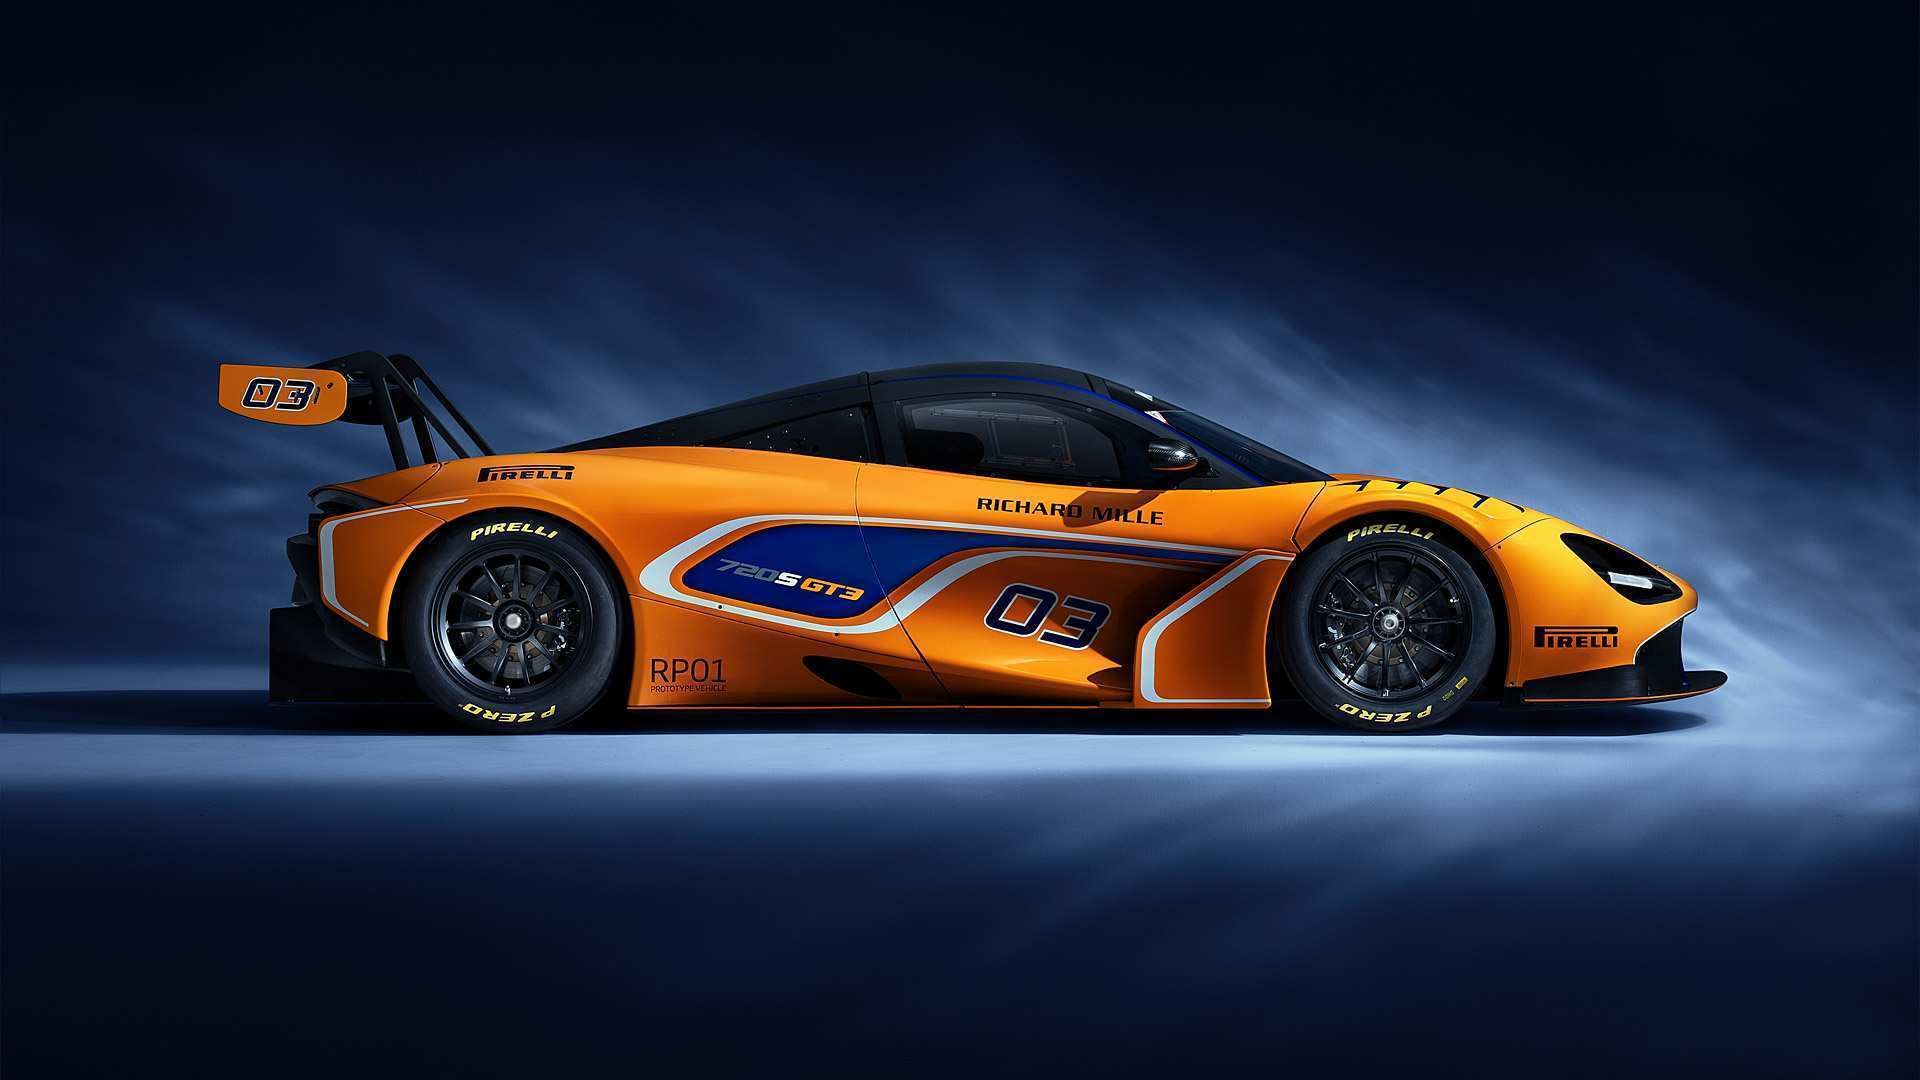 17 All New 2019 Mclaren Top Speed Rumors by 2019 Mclaren Top Speed